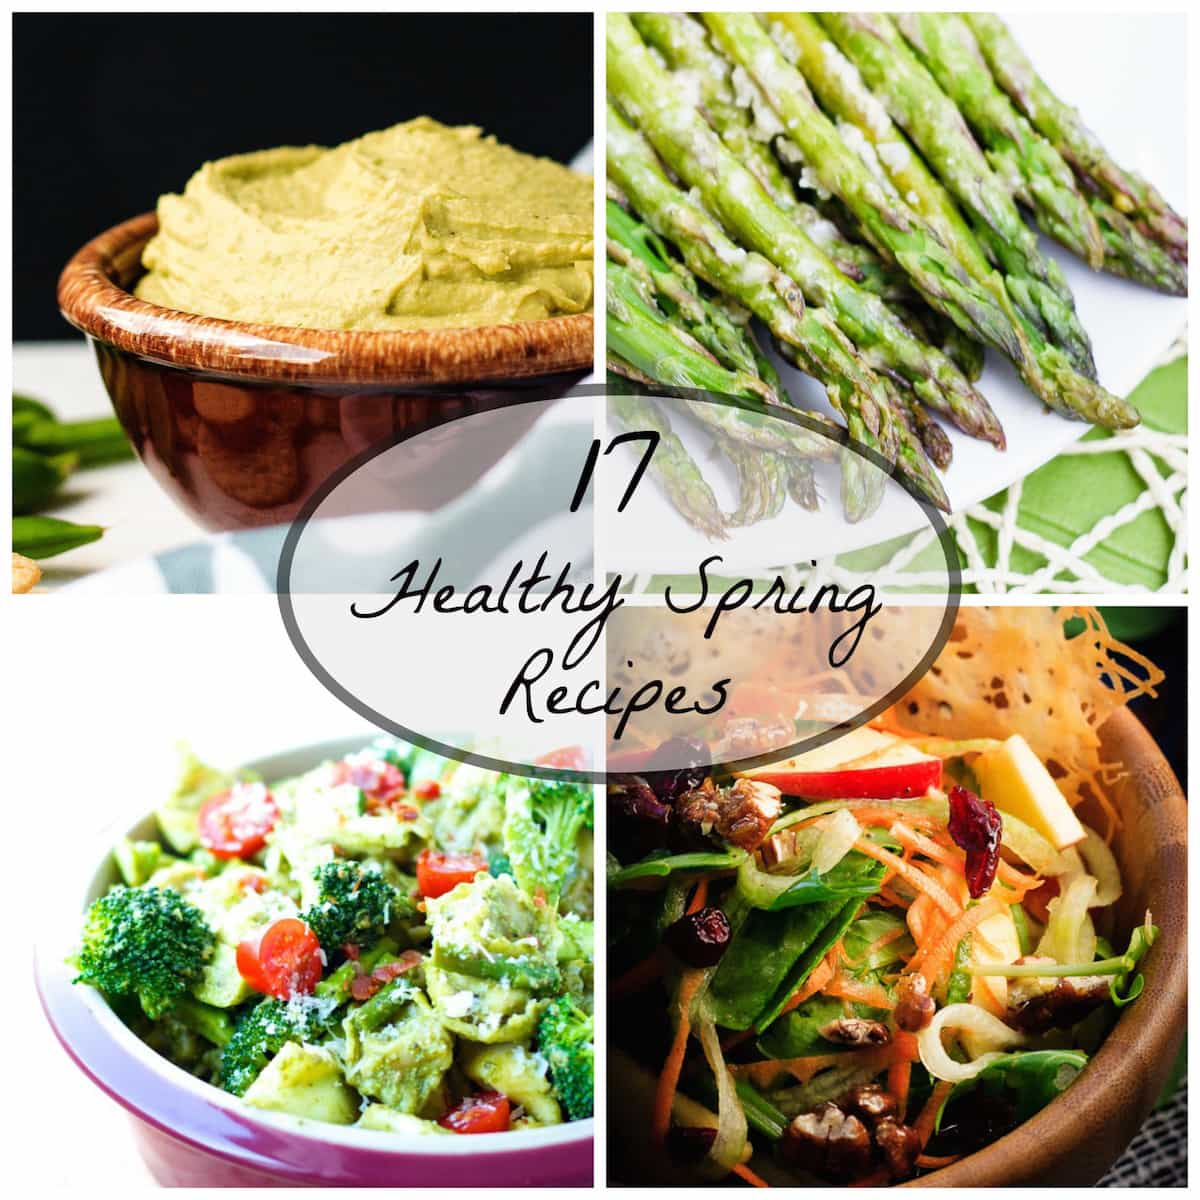 17 Healthy Spring Recipes